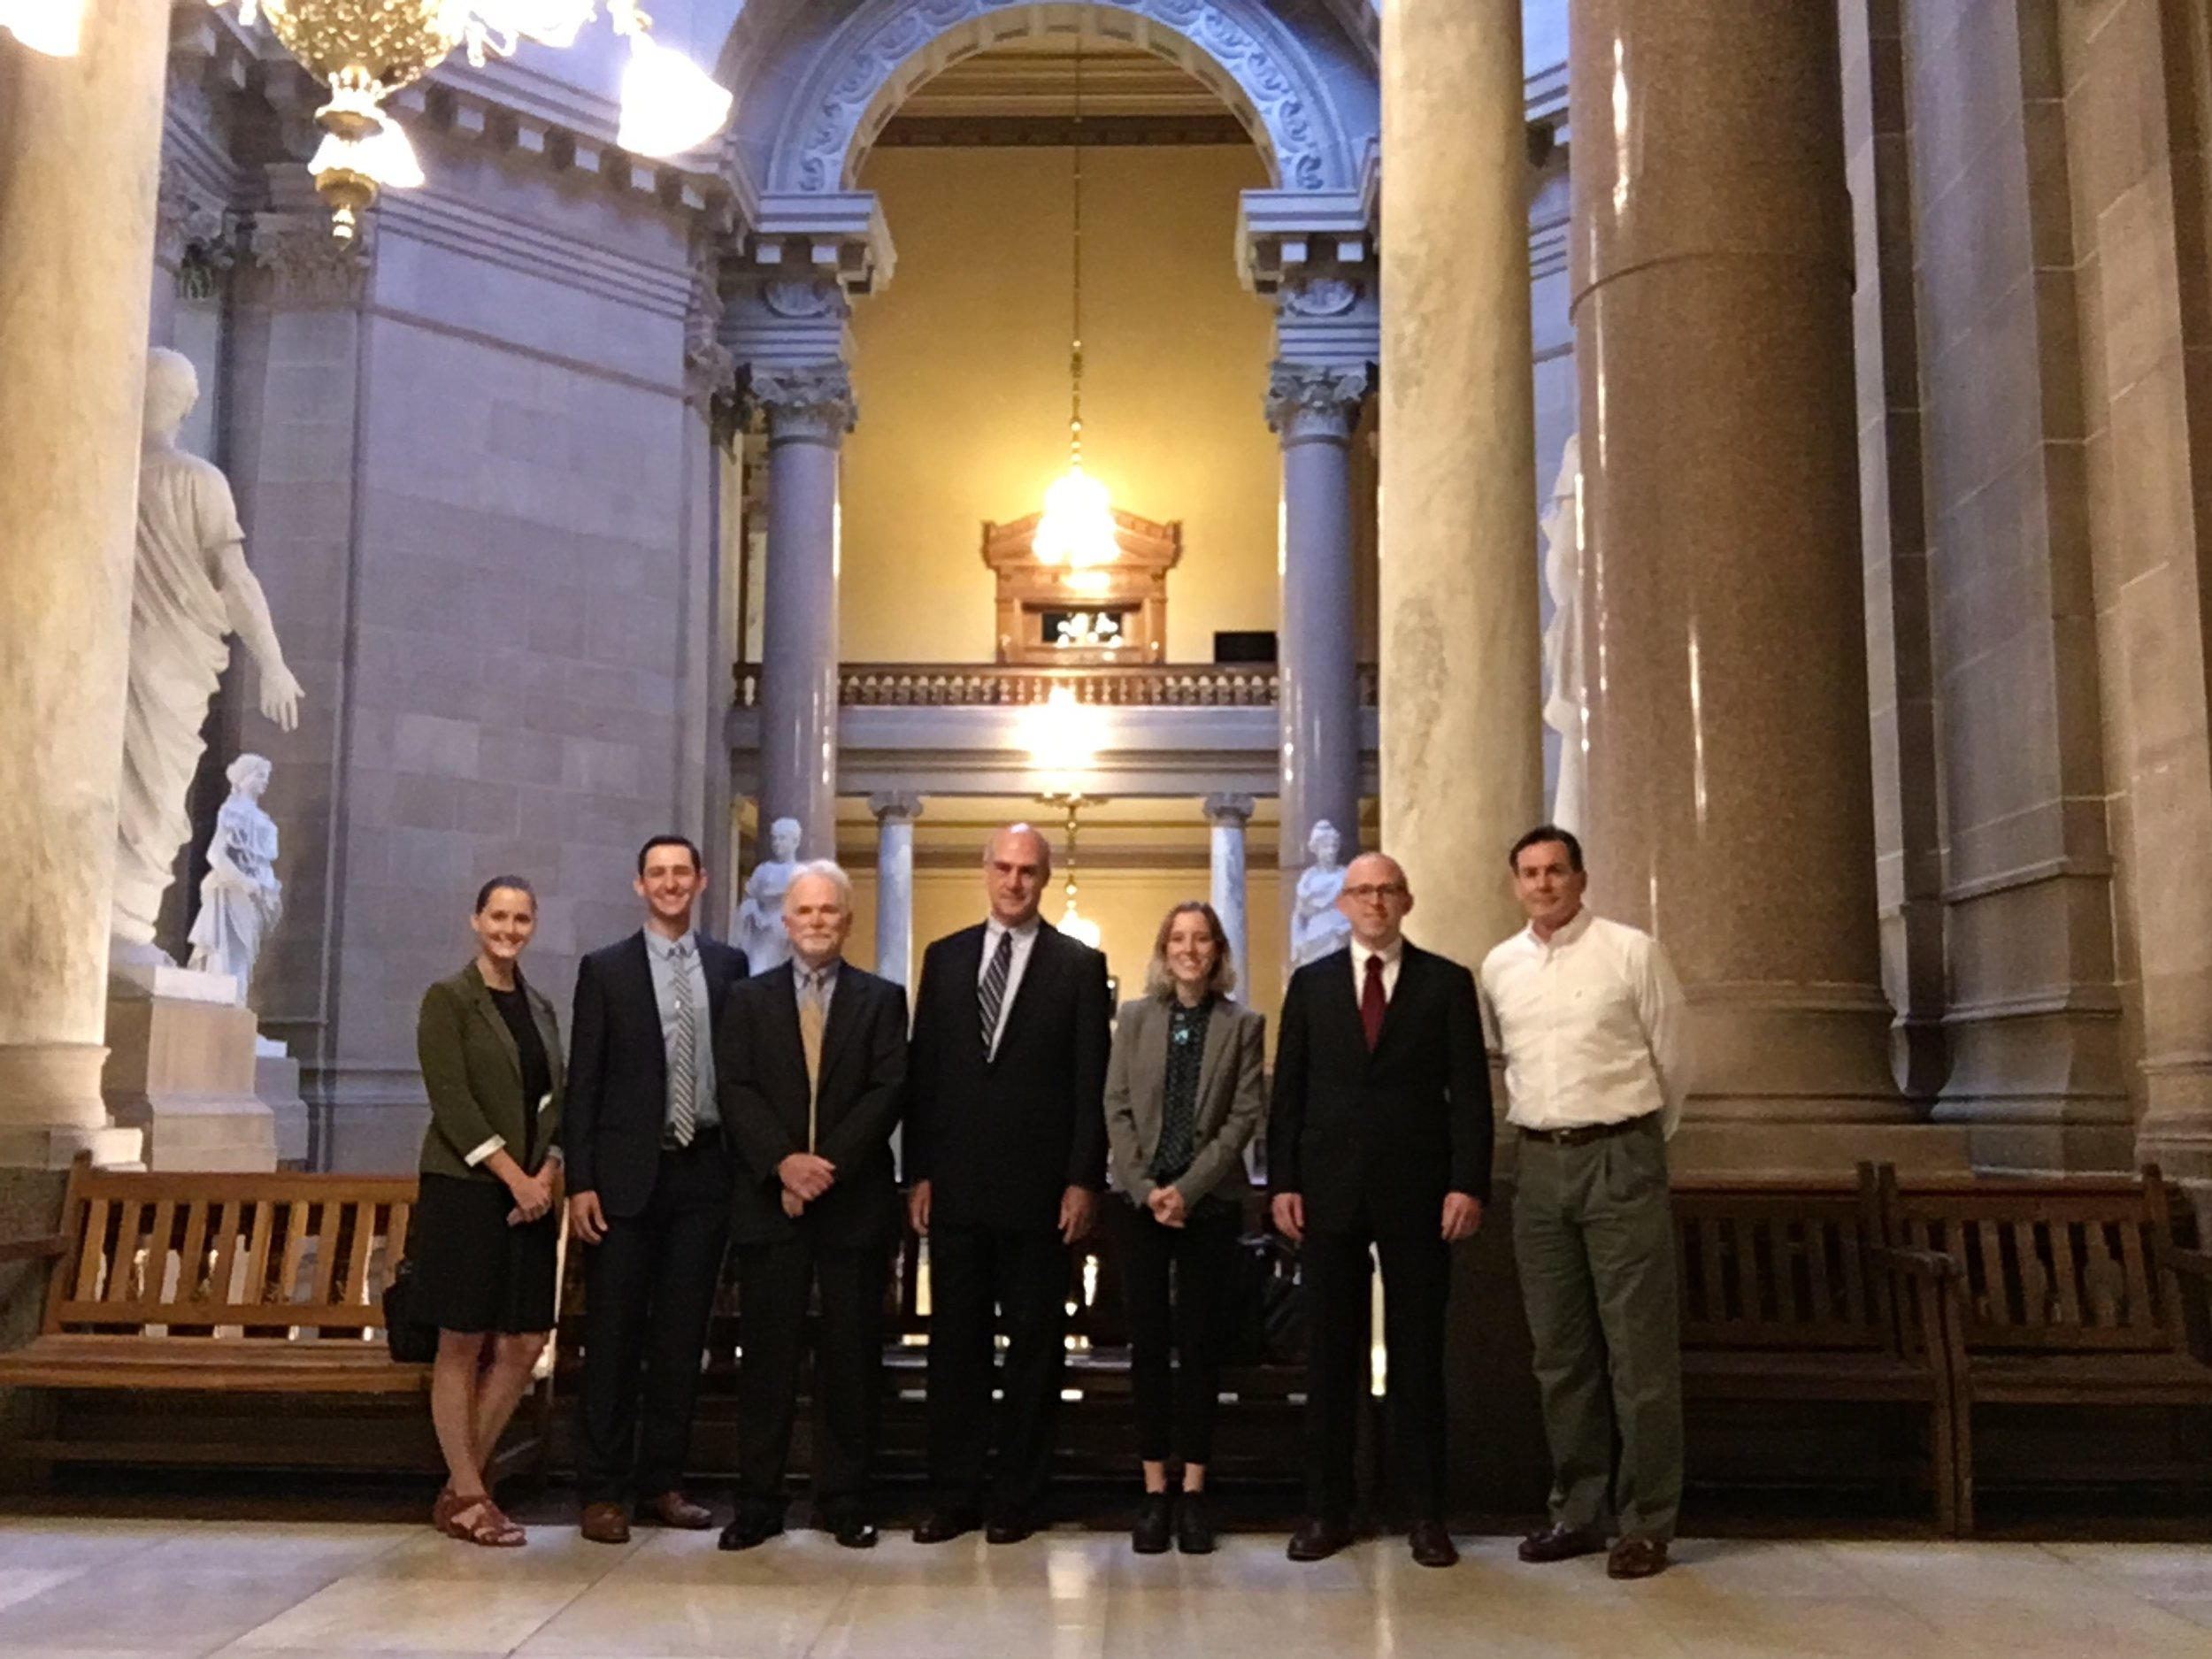 CLC staff at the Indiana Statehouse before the oral argument in September.   Left to right: Lily Bonwich, Bo Mahr, Jeff Hyman, Bill Weeks, Shelby Hoshaw, CJ Buehner, and Dan Klobusnik